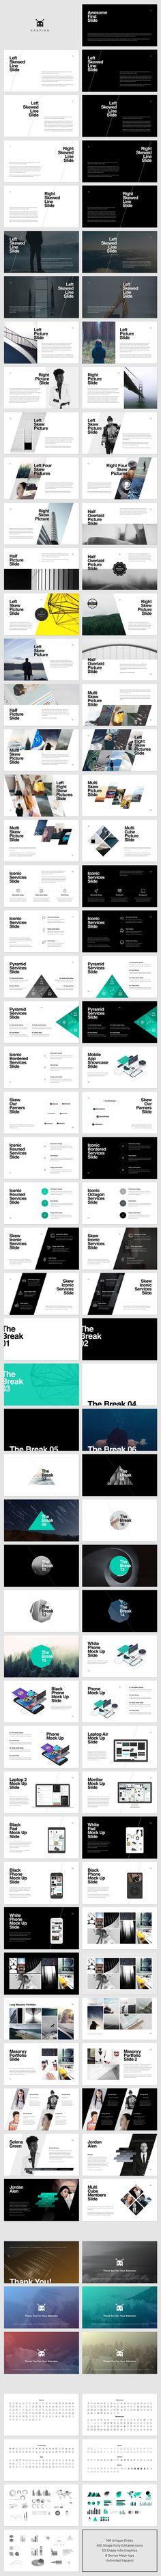 KASPIAN Presentation Template (PPT & KEY ) on Behance